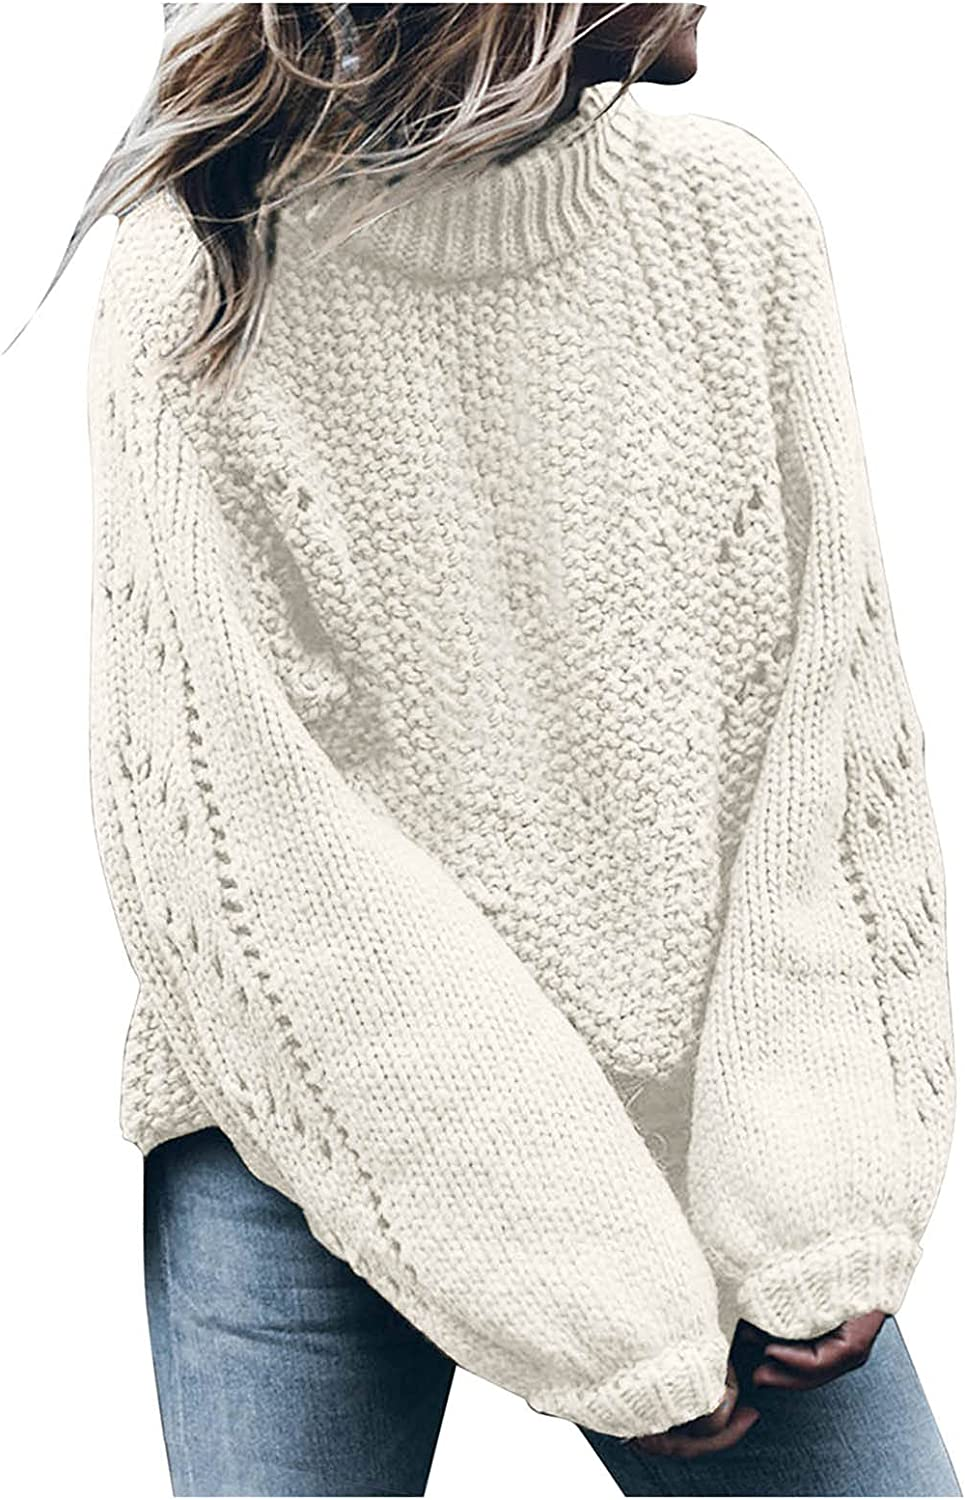 NRUTUP Winter Sweater for Women Casual Turtleneck Solid Color Long Sleeve Hollow Loose Fit Pullover Sweater Blouses